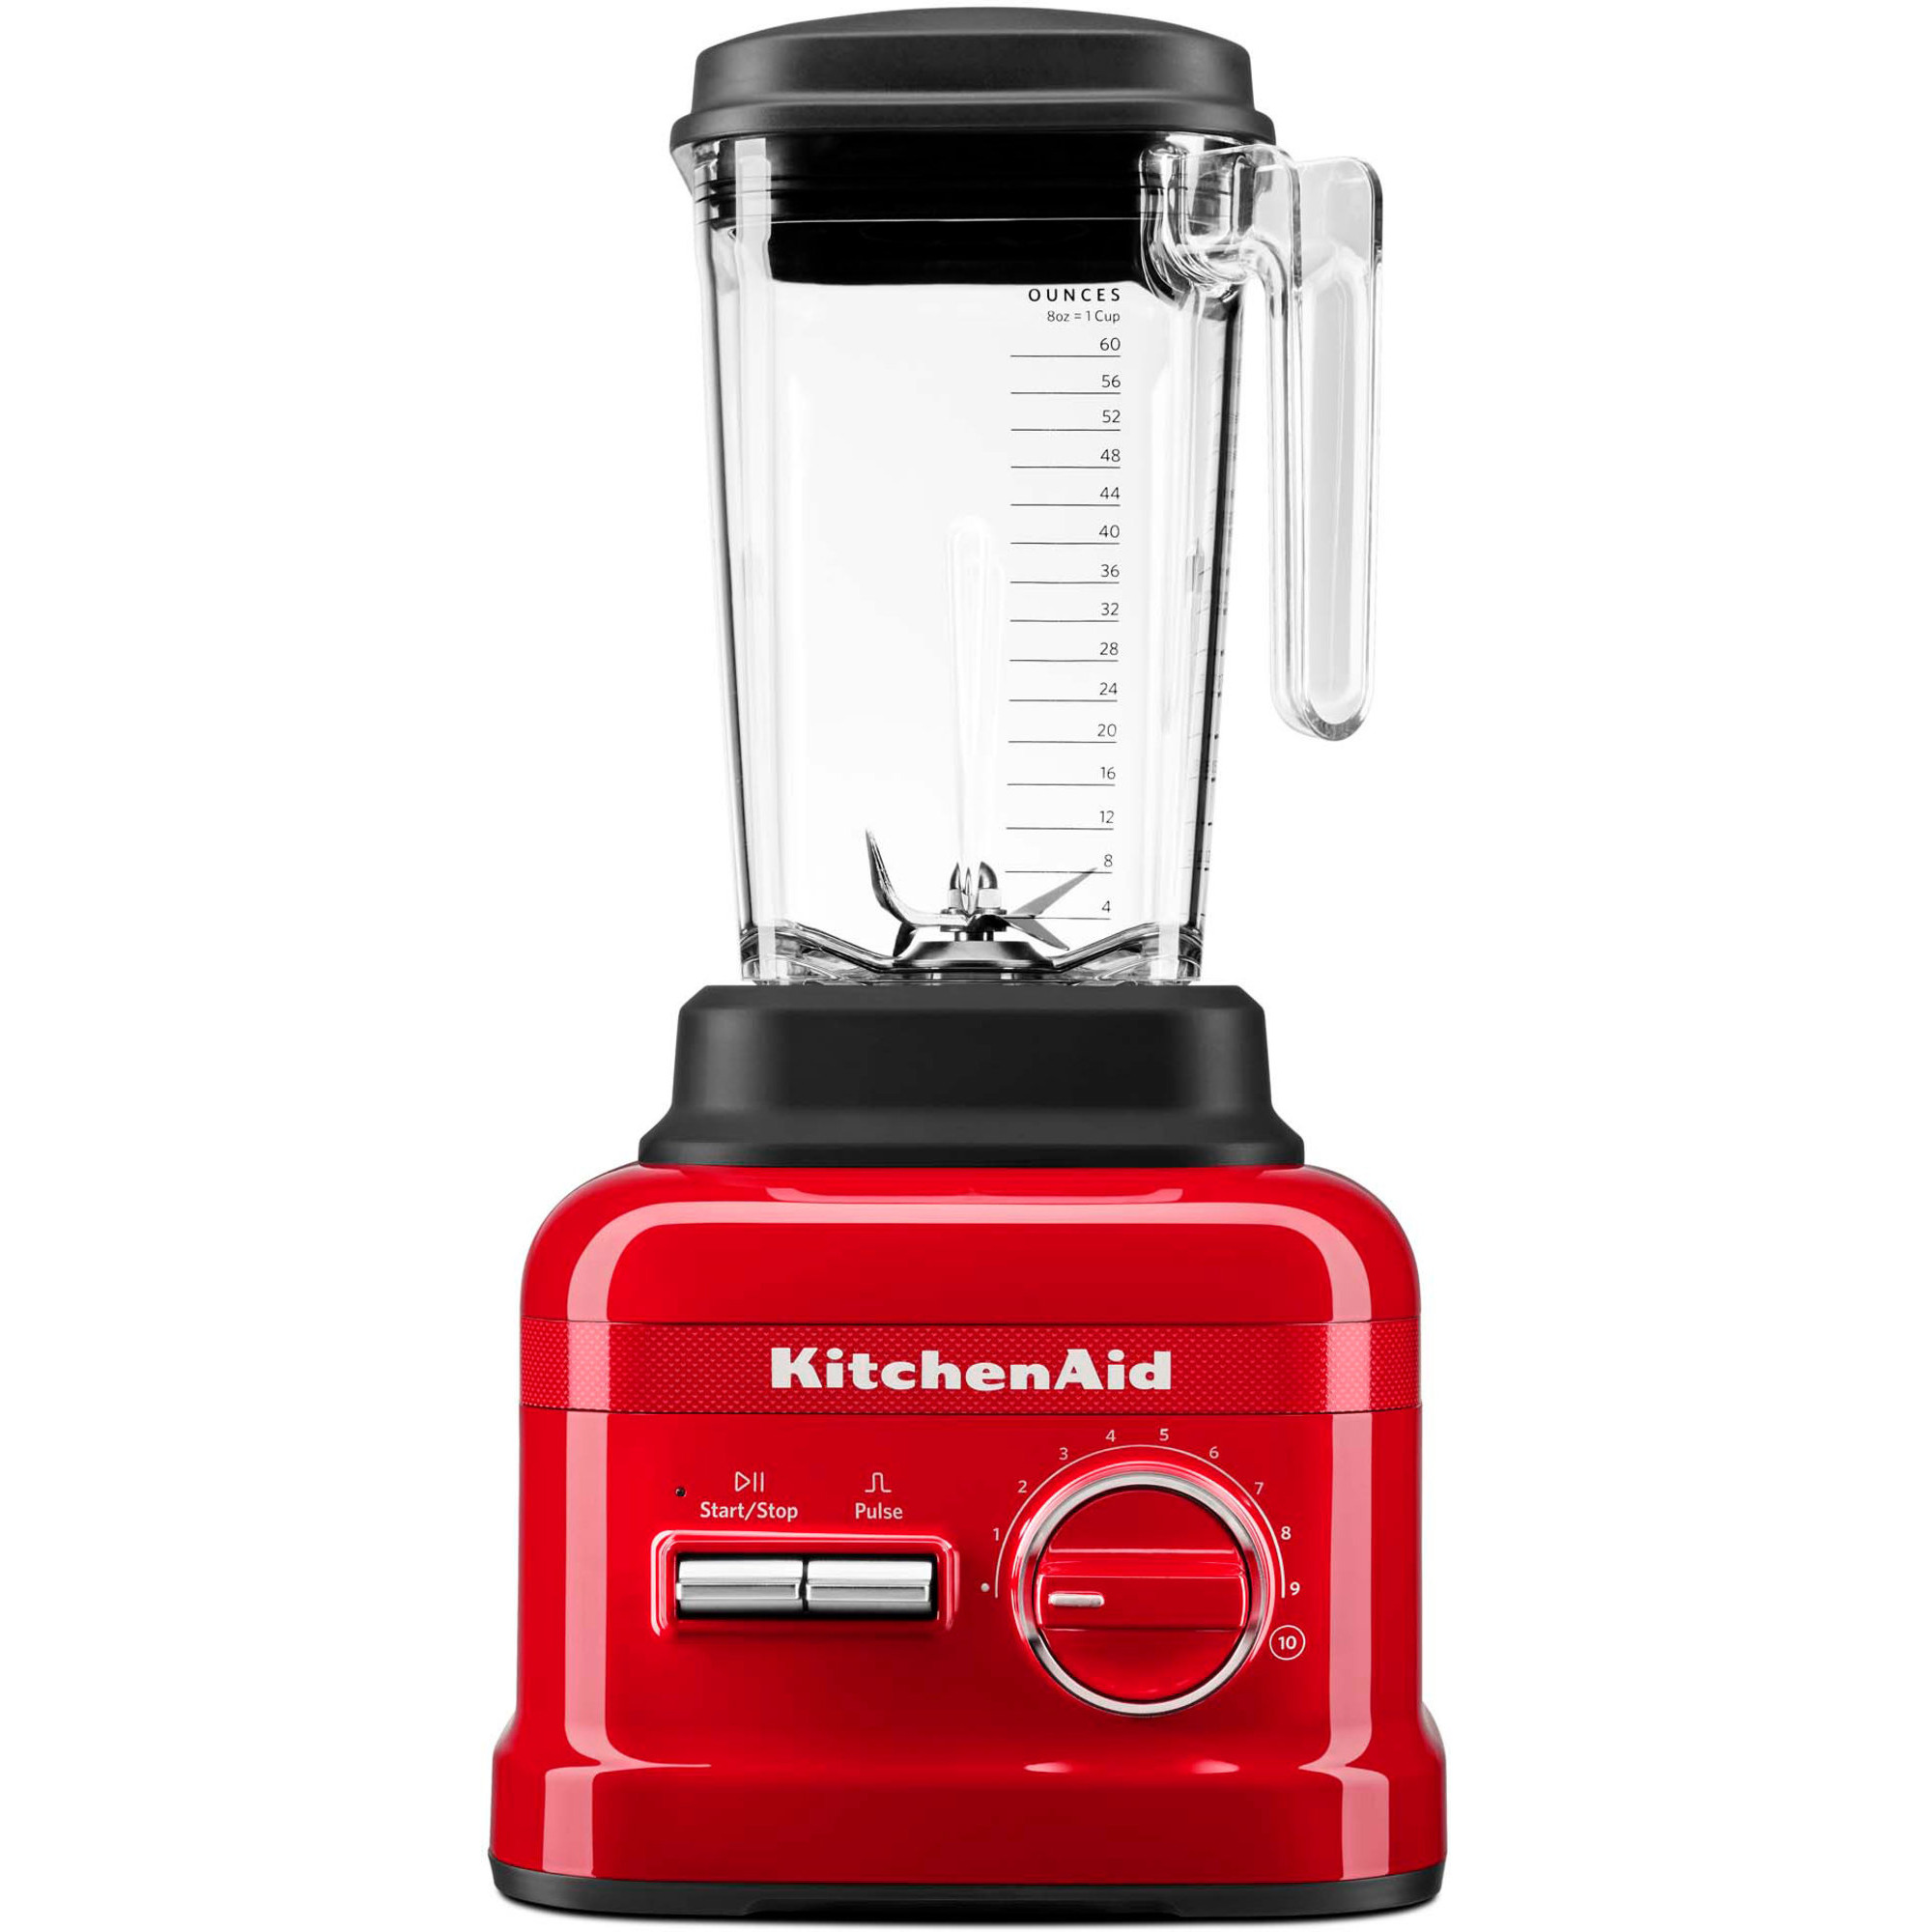 KitchenAid Artisan High Performance Blender 100 Year Limited Edition – Queen of Hearts Collection